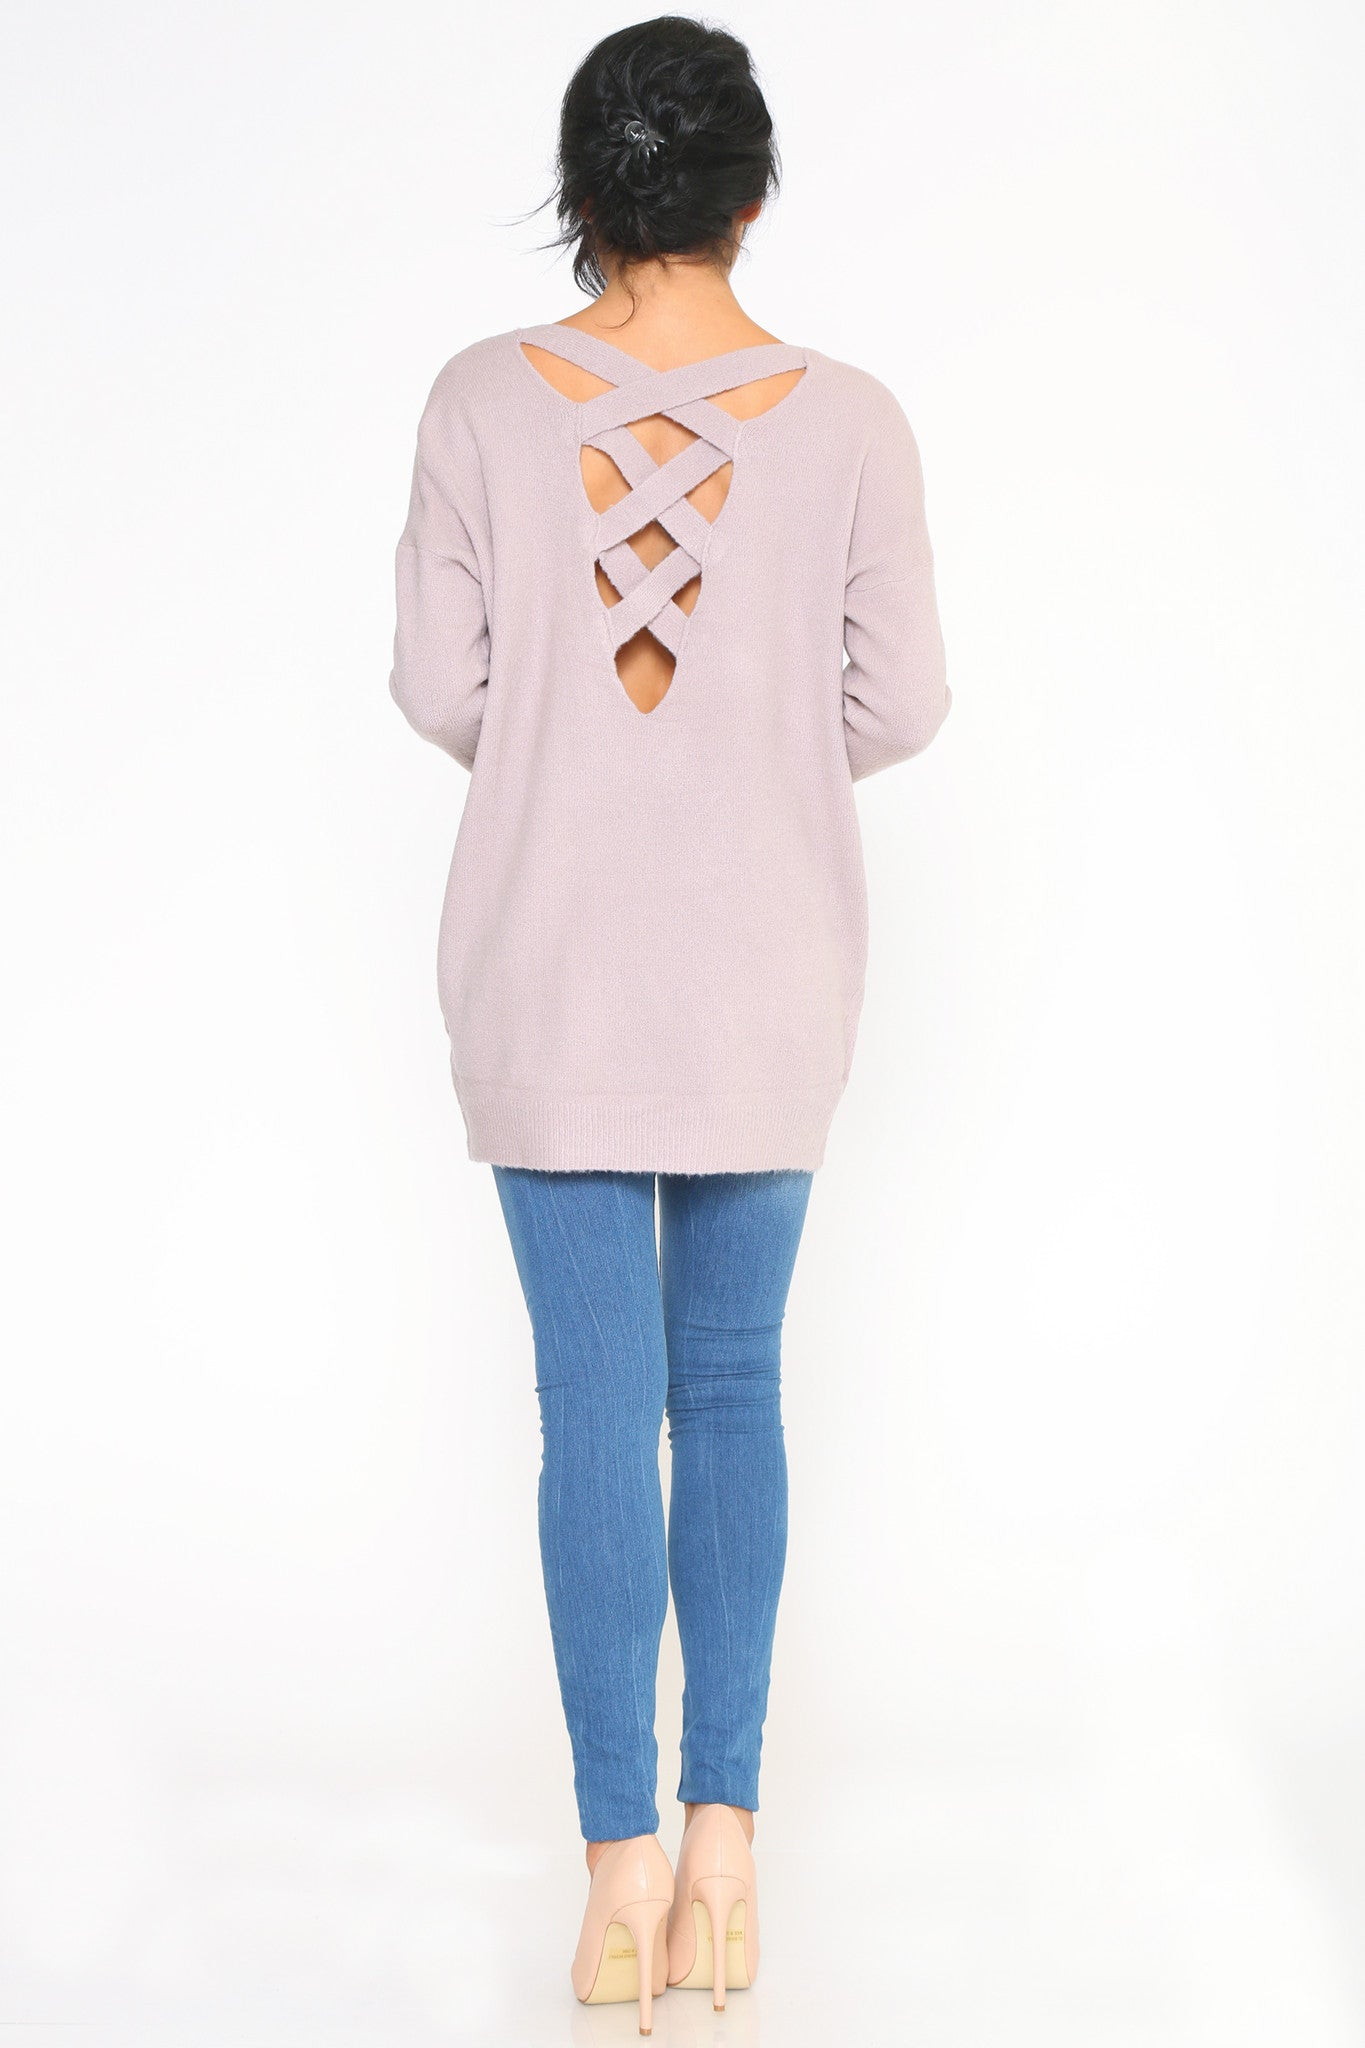 LUCIA SWEATER - Glam Envy - 3